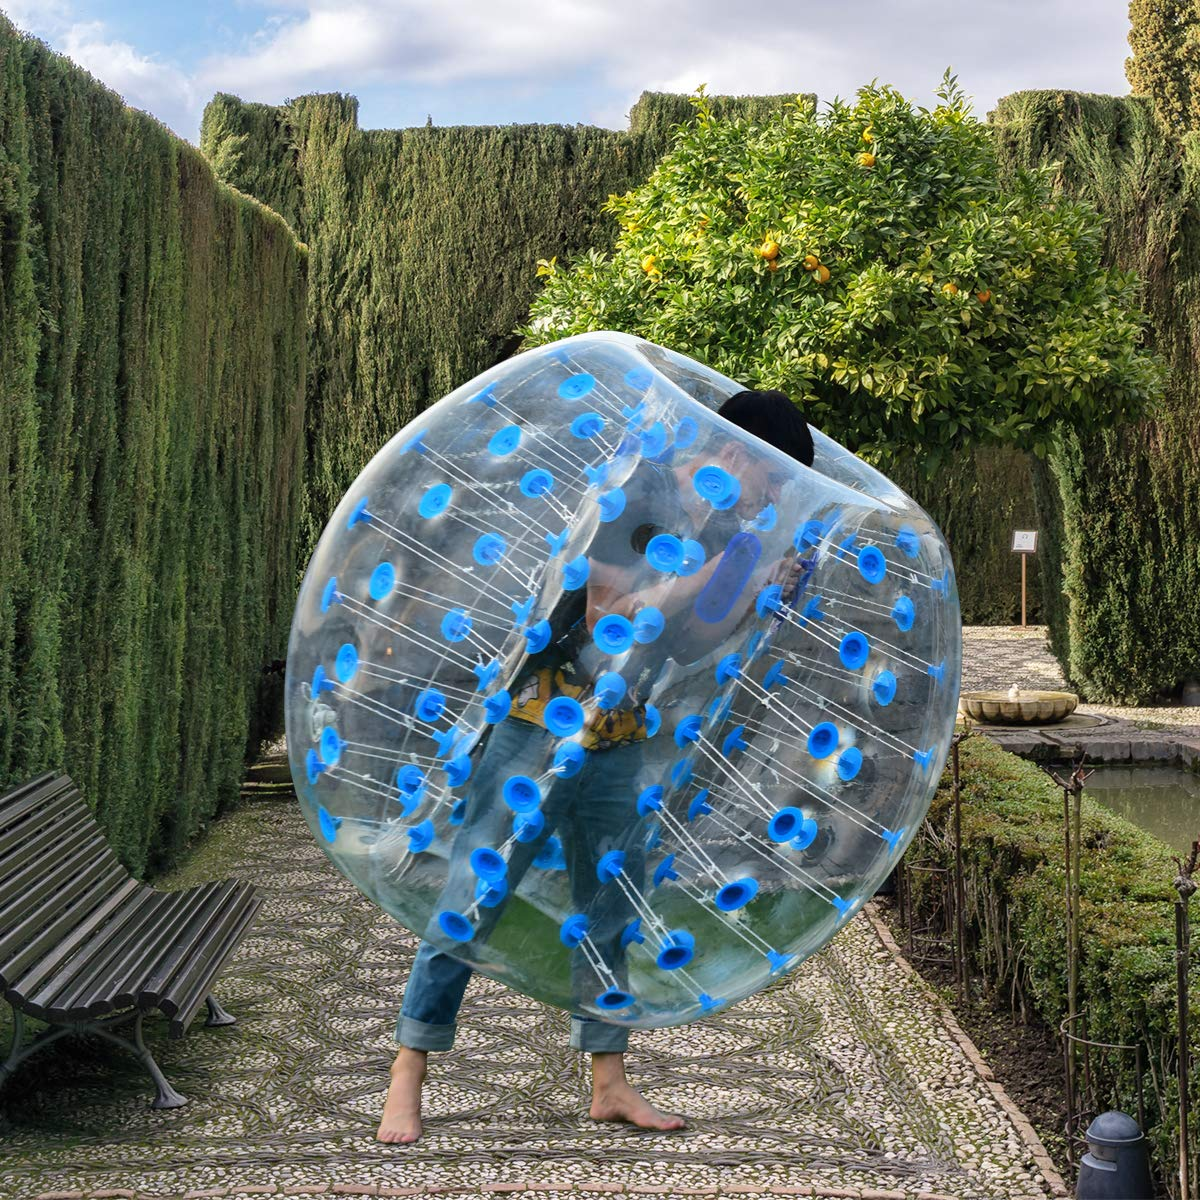 Costzon Inflatable Bumper Soccer Ball, Dia 5ft (1.5m) Giant Human Hamster Bubble Ball, 8mm Thickness Transparent PVC Zorb Ball for Kids, Teens Outdoor Team Gaming Play (Blue) by Costzon